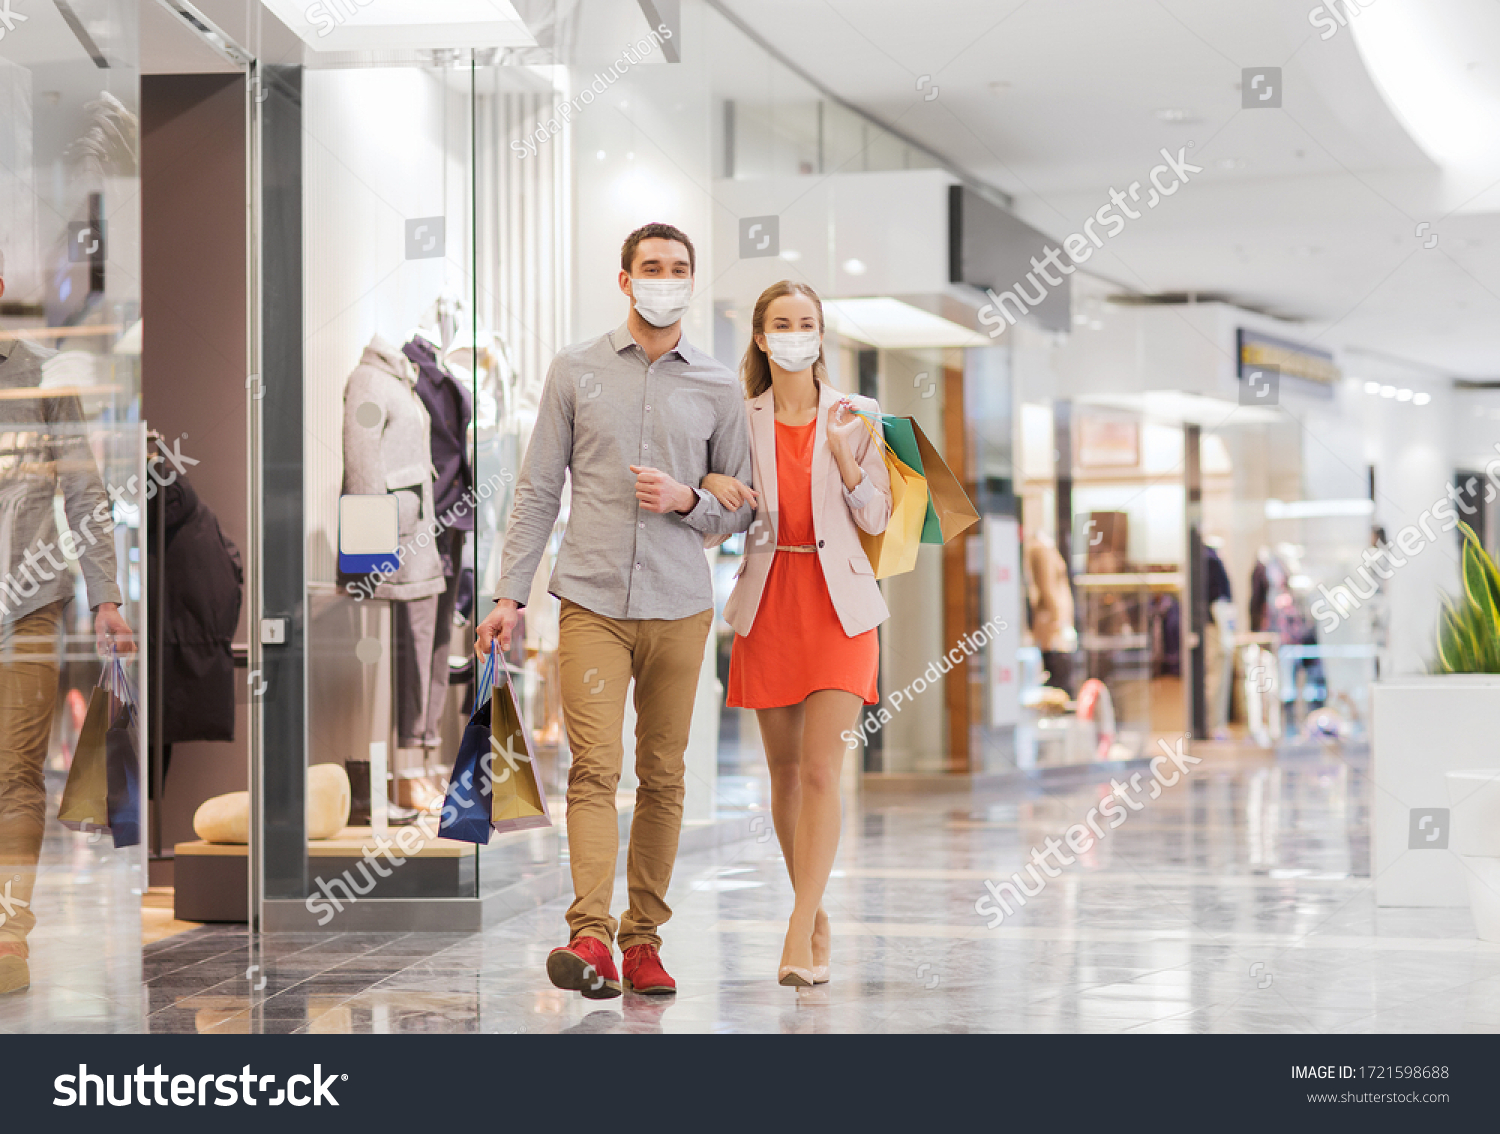 sale, consumerism and pandemic concept - happy young couple wearing face protective medical mask for protection from virus disease with shopping bags walking in mall #1721598688